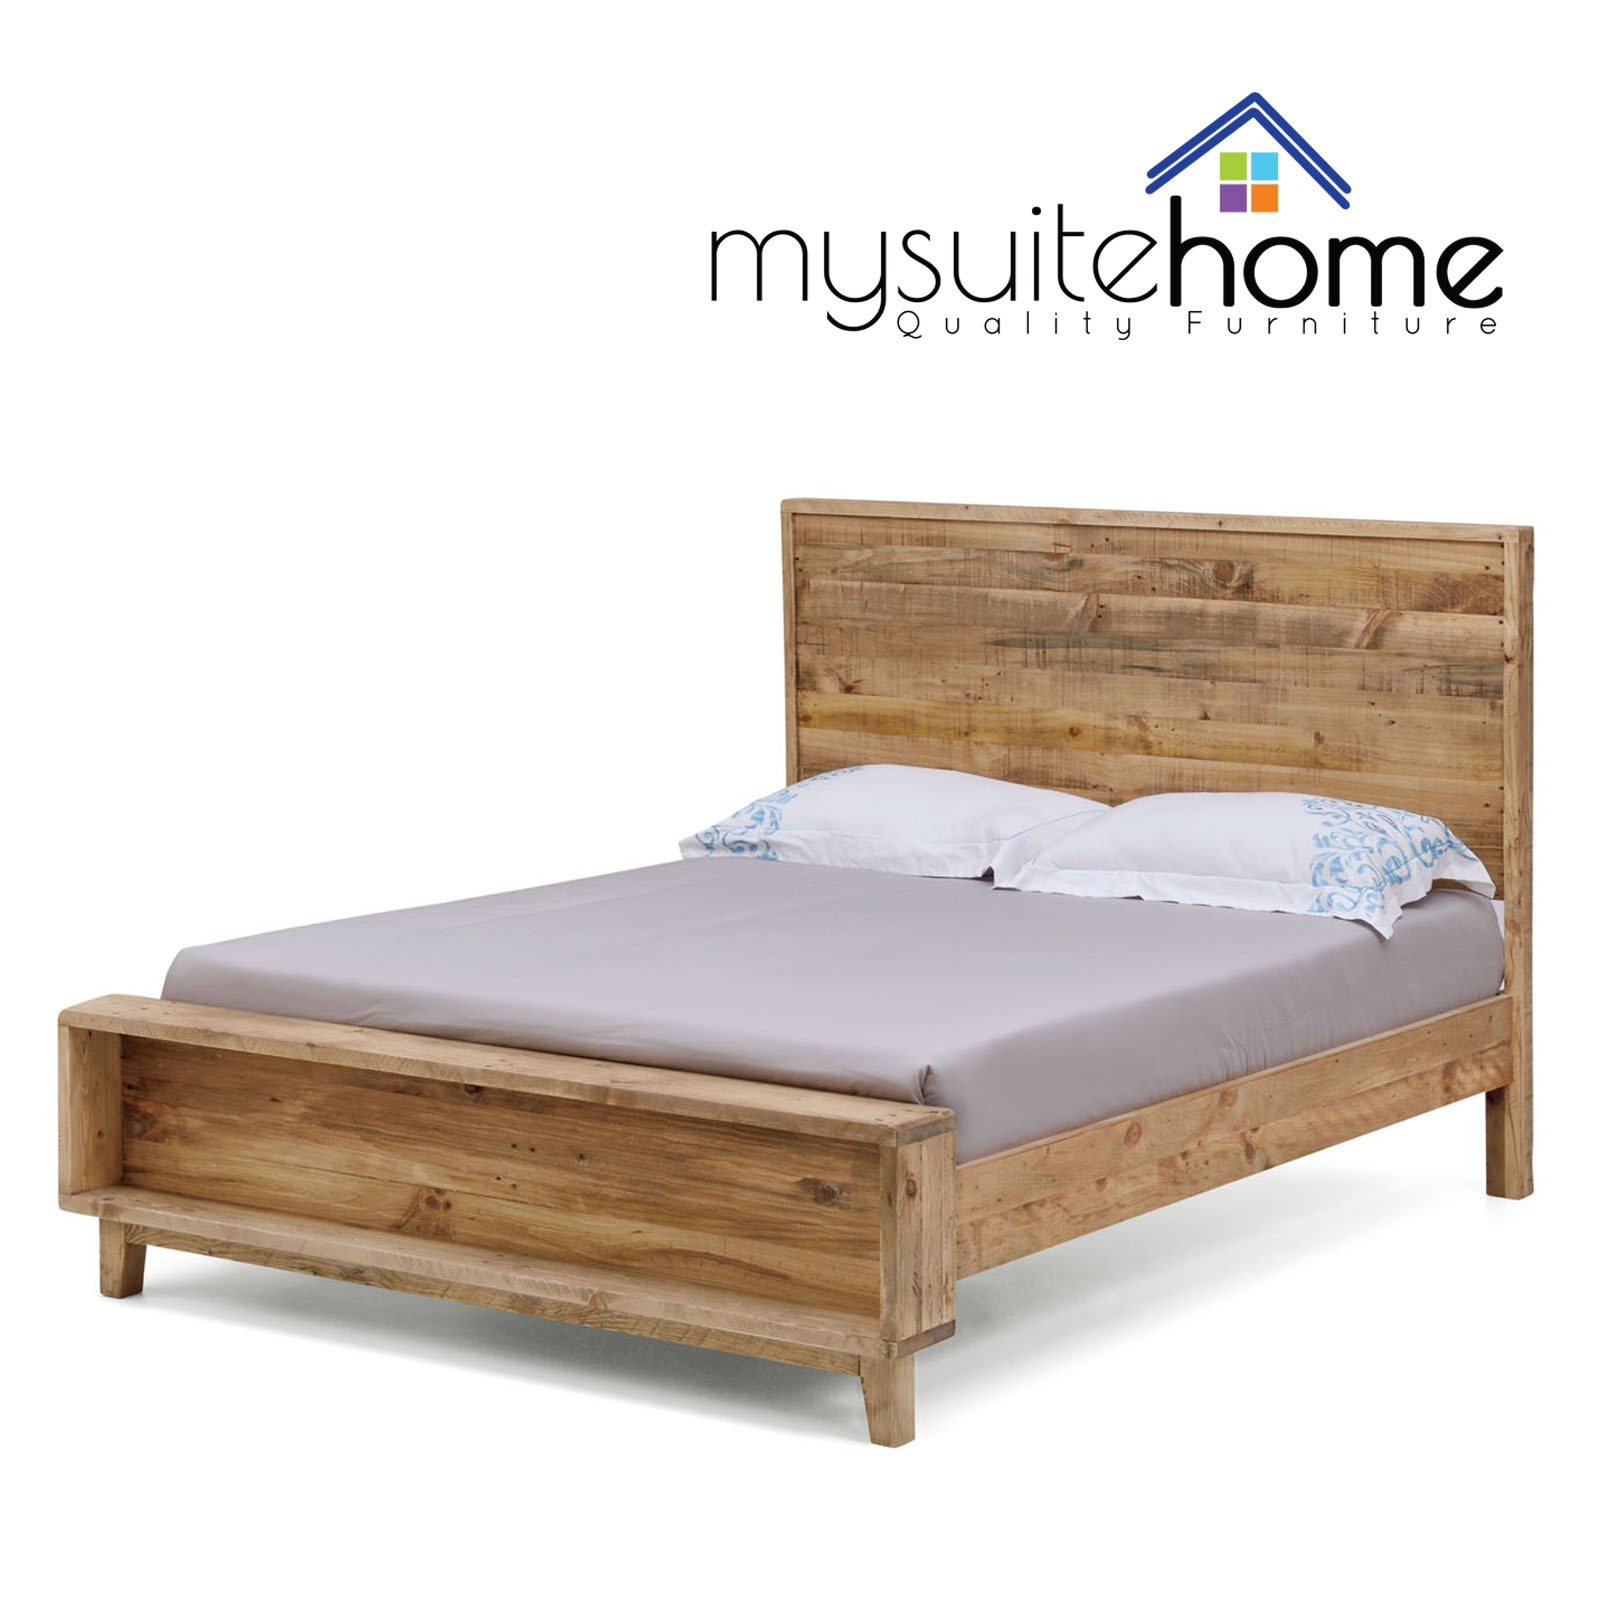 Portland recycled solid pine rustic timber king size bed frame for Beds january sales